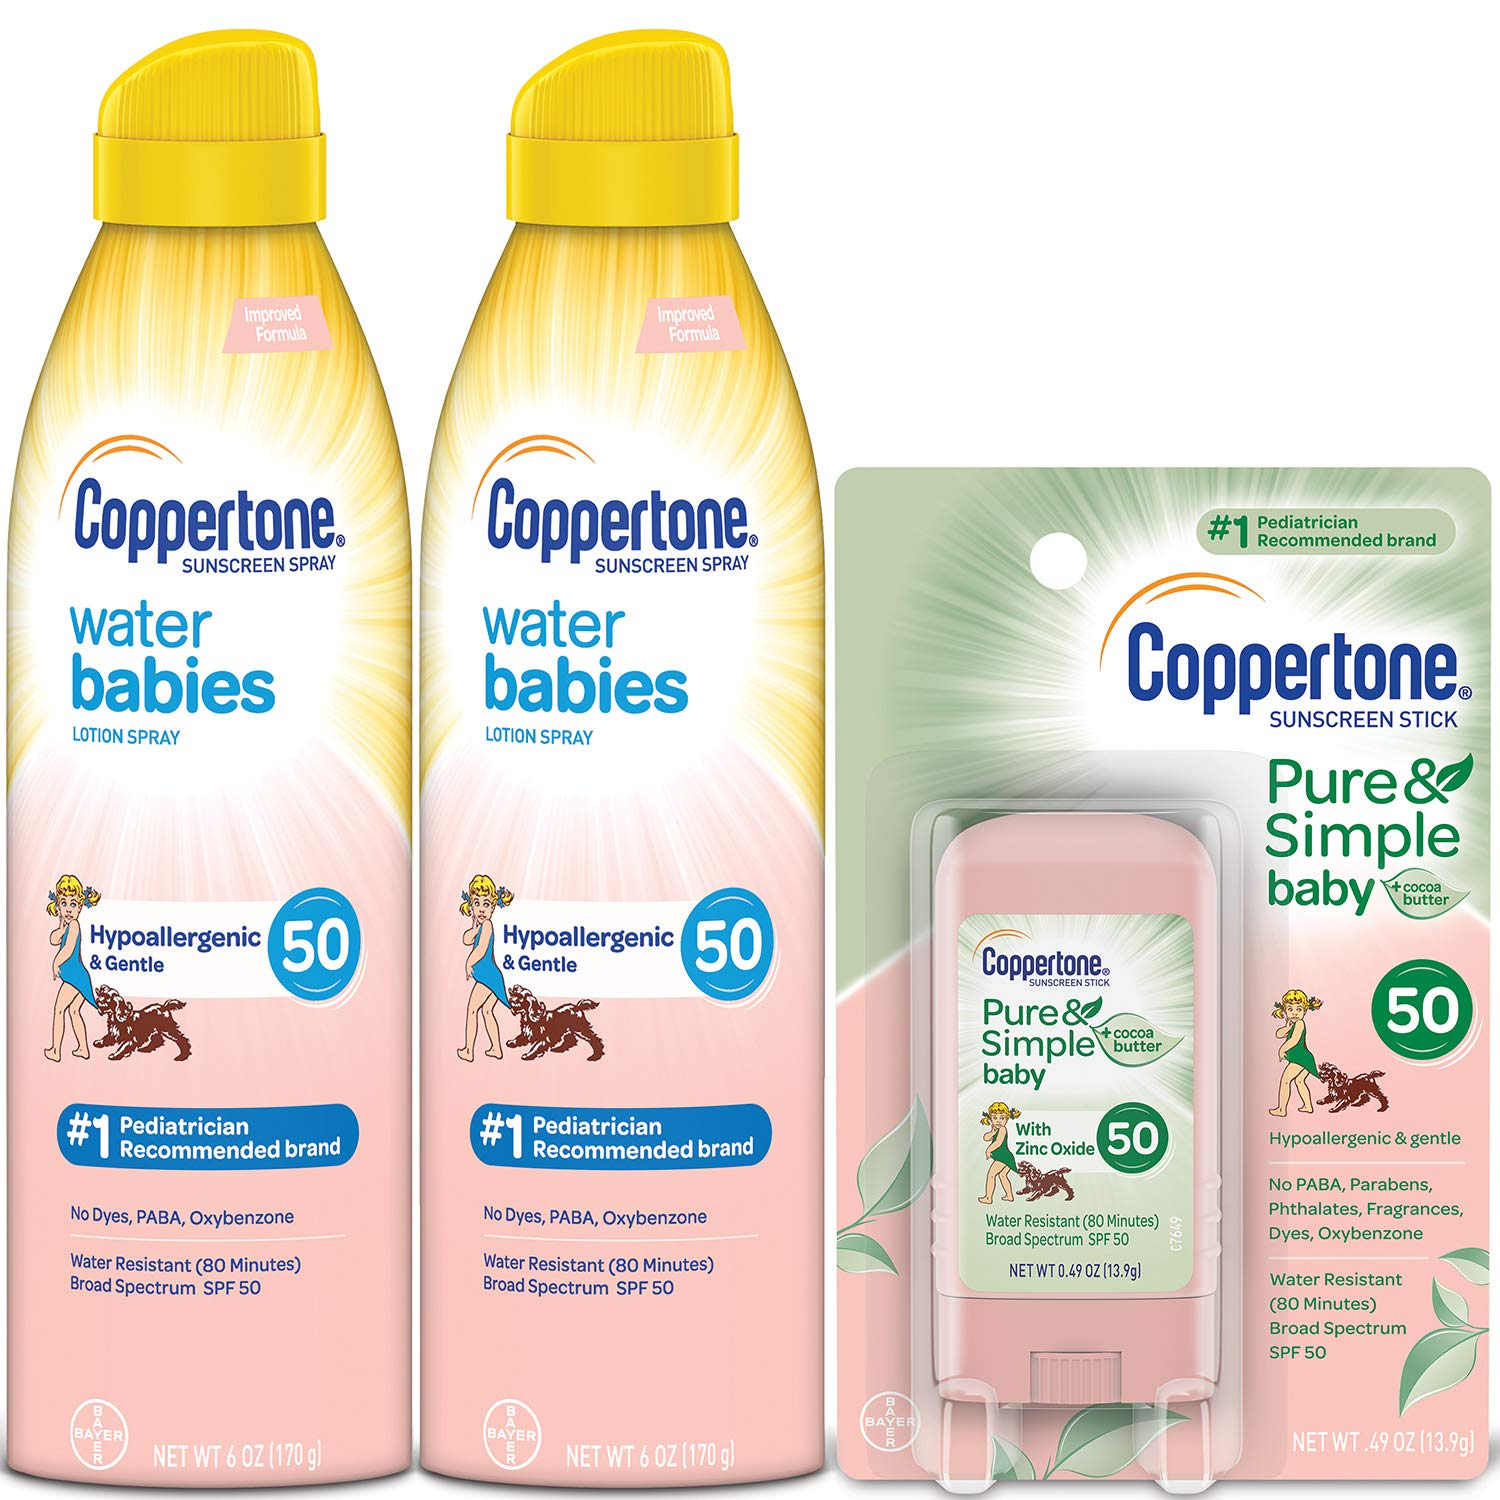 Coppertone WaterBabies Pure & Simple Mineral Based Lotion, Sunscreen Spray (2 Count) and Suncreen Stick, 1 Set by Coppertone